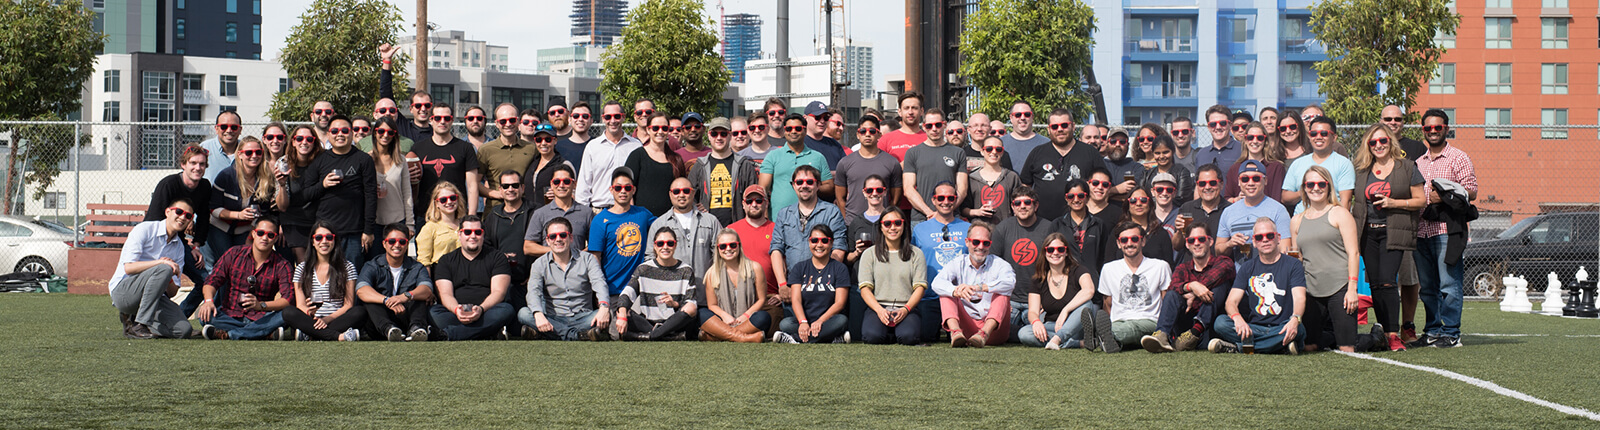 Sauce Labs Summer Picnic Team Photo